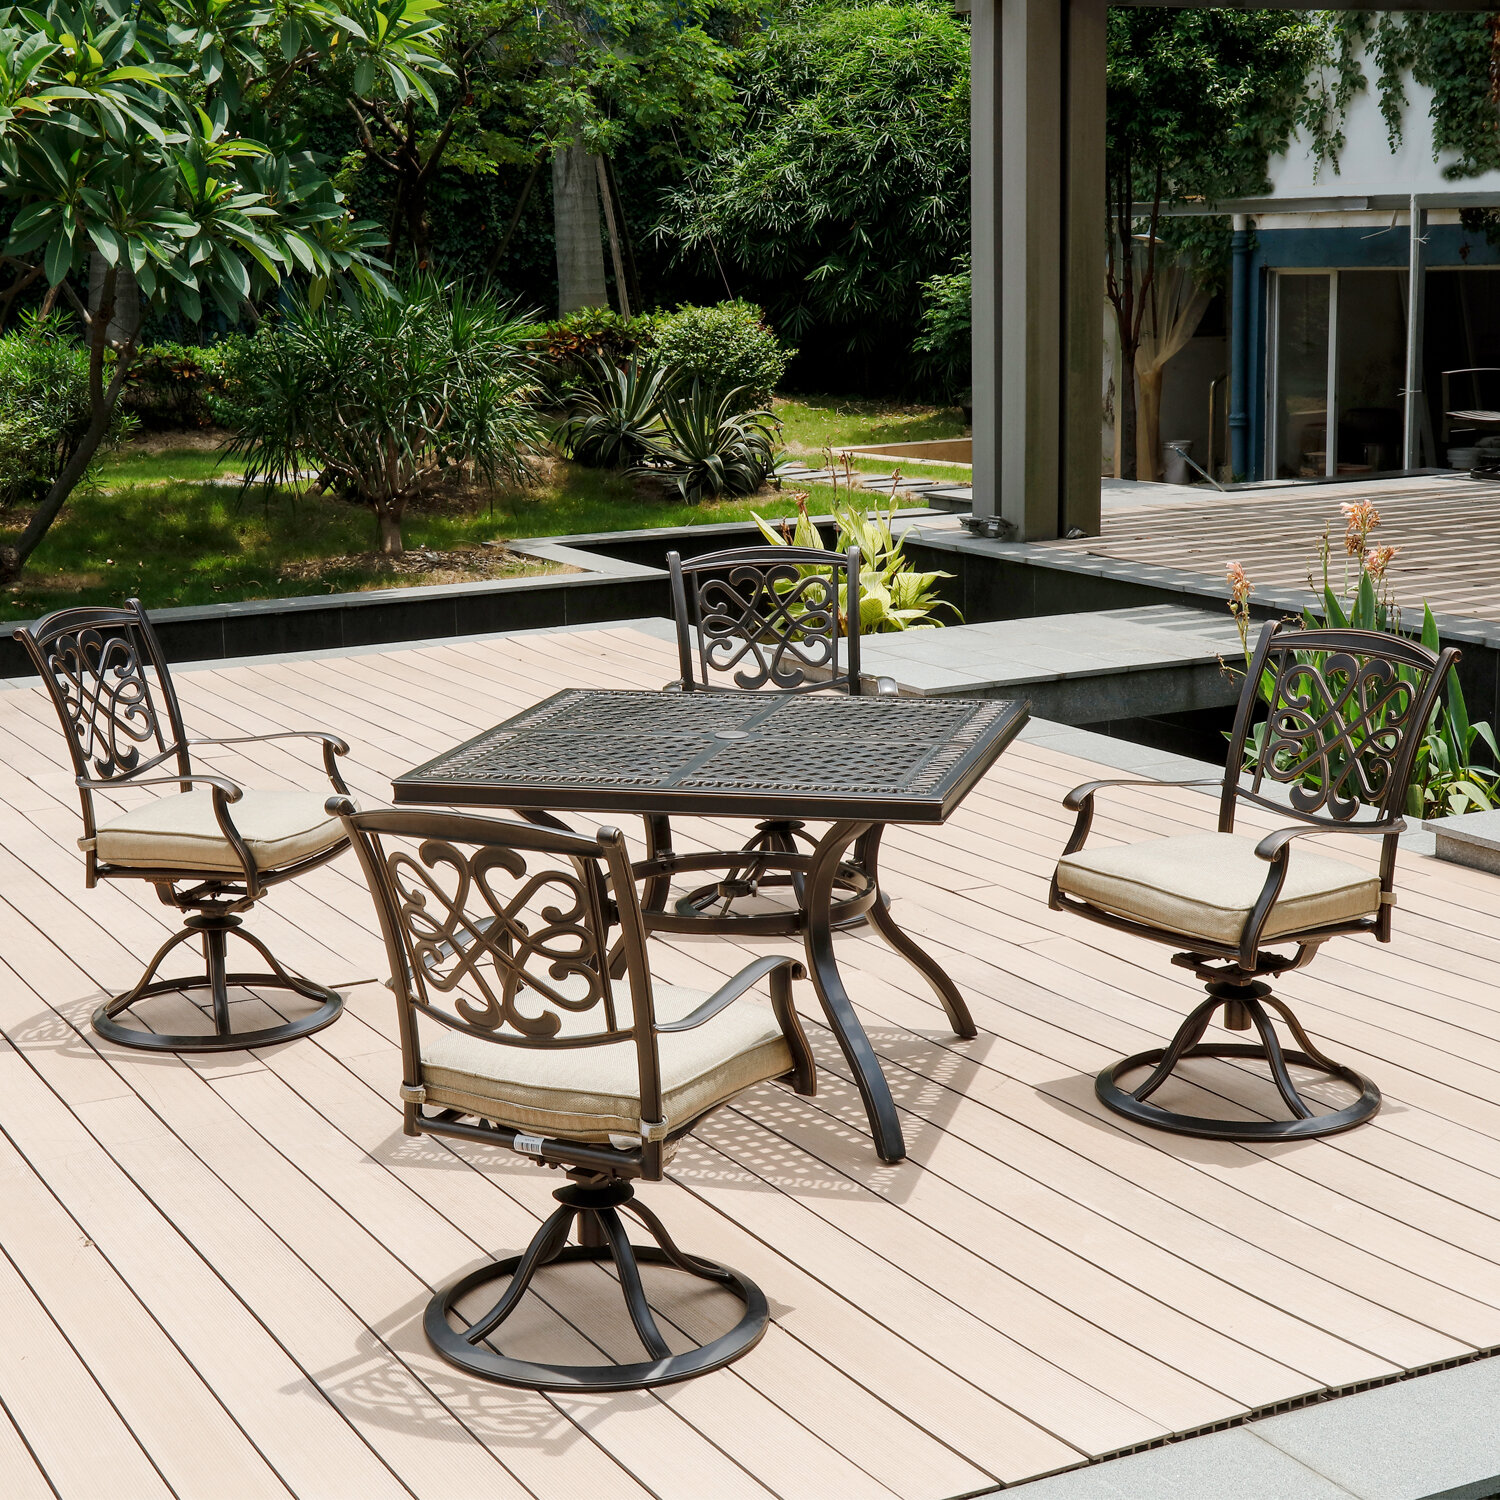 10 Piece Outdoor Dining Set Patio Furniture, Deep Cushioned Aluminum Swivel  Rocker Chair Set With Umbrella Hole Dining Table For Garden, Pool, Lawn,